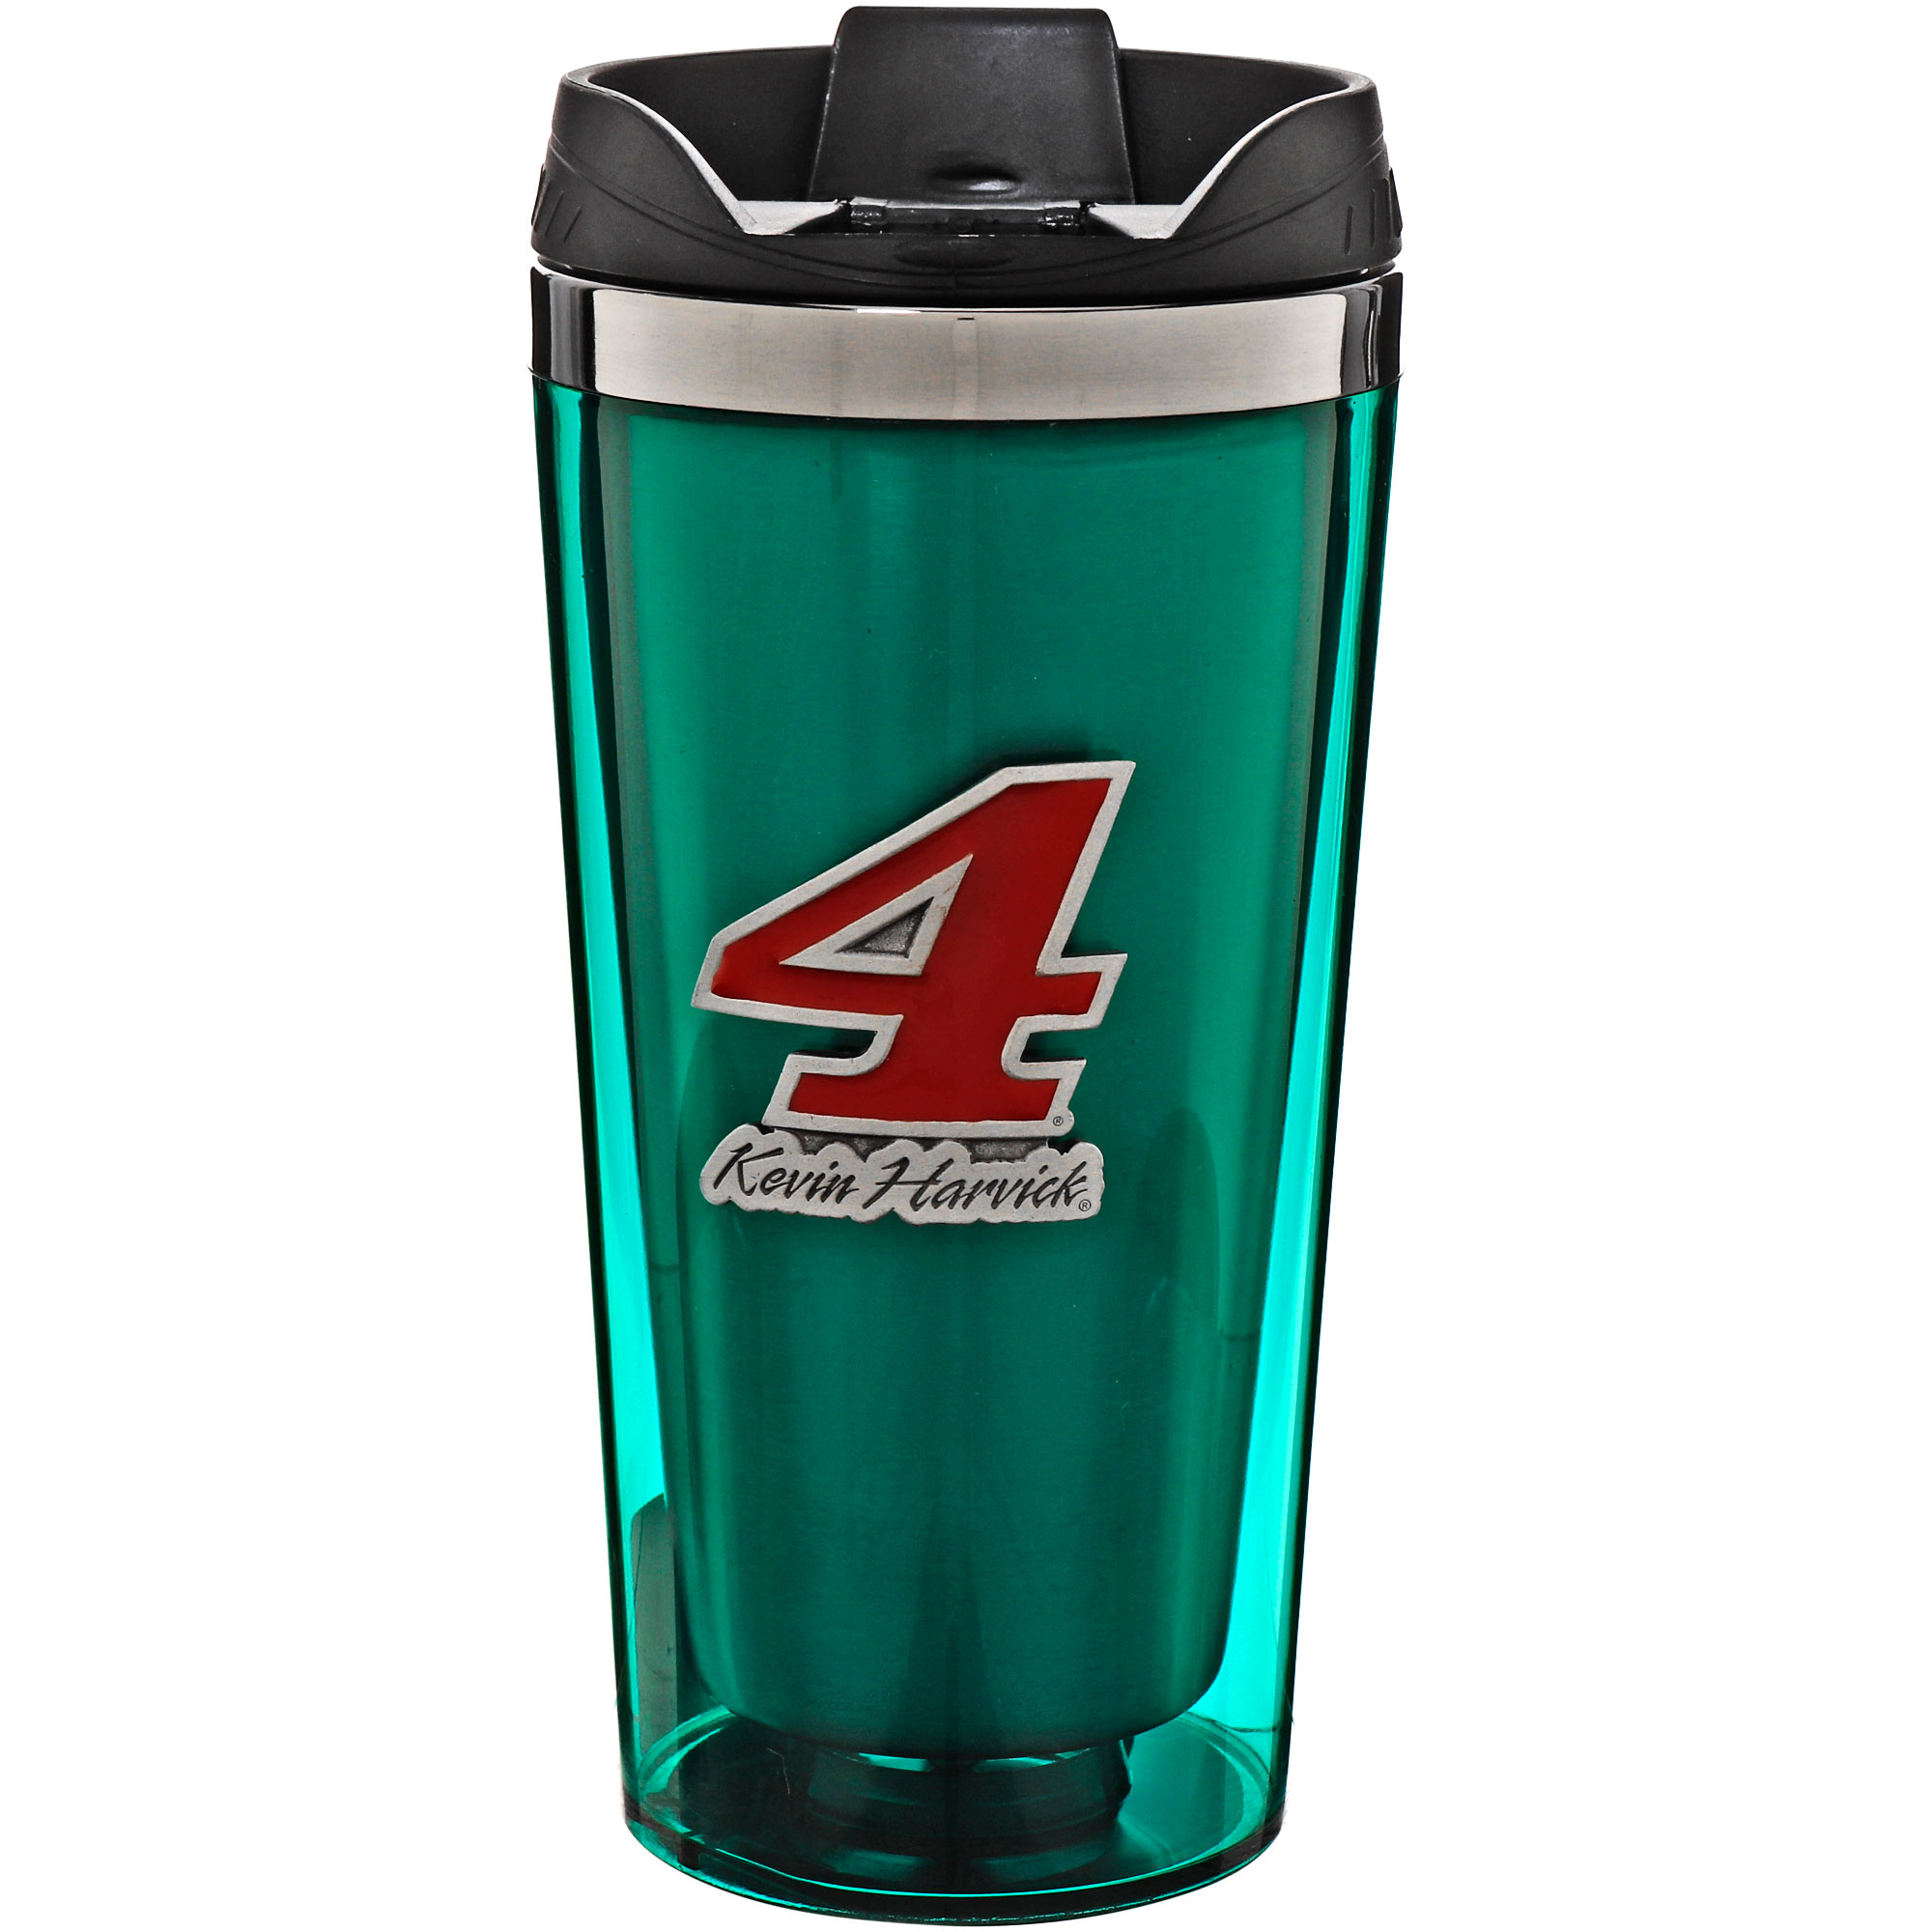 Kevin Harvick 16oz. Acrylic Mug - Green - No Size